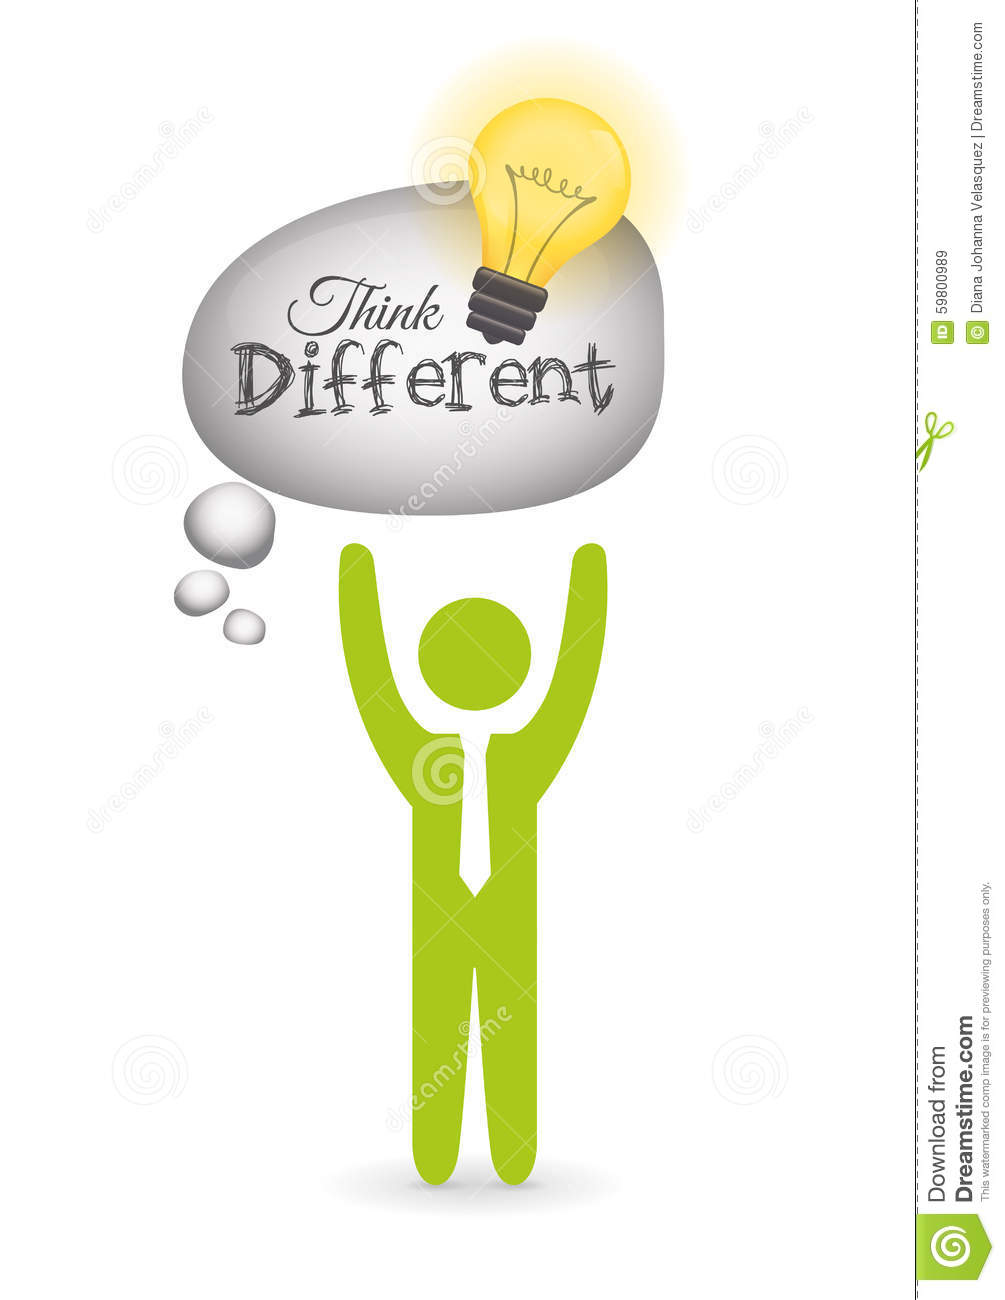 Think Different Design Stock Illustration Image 59800989